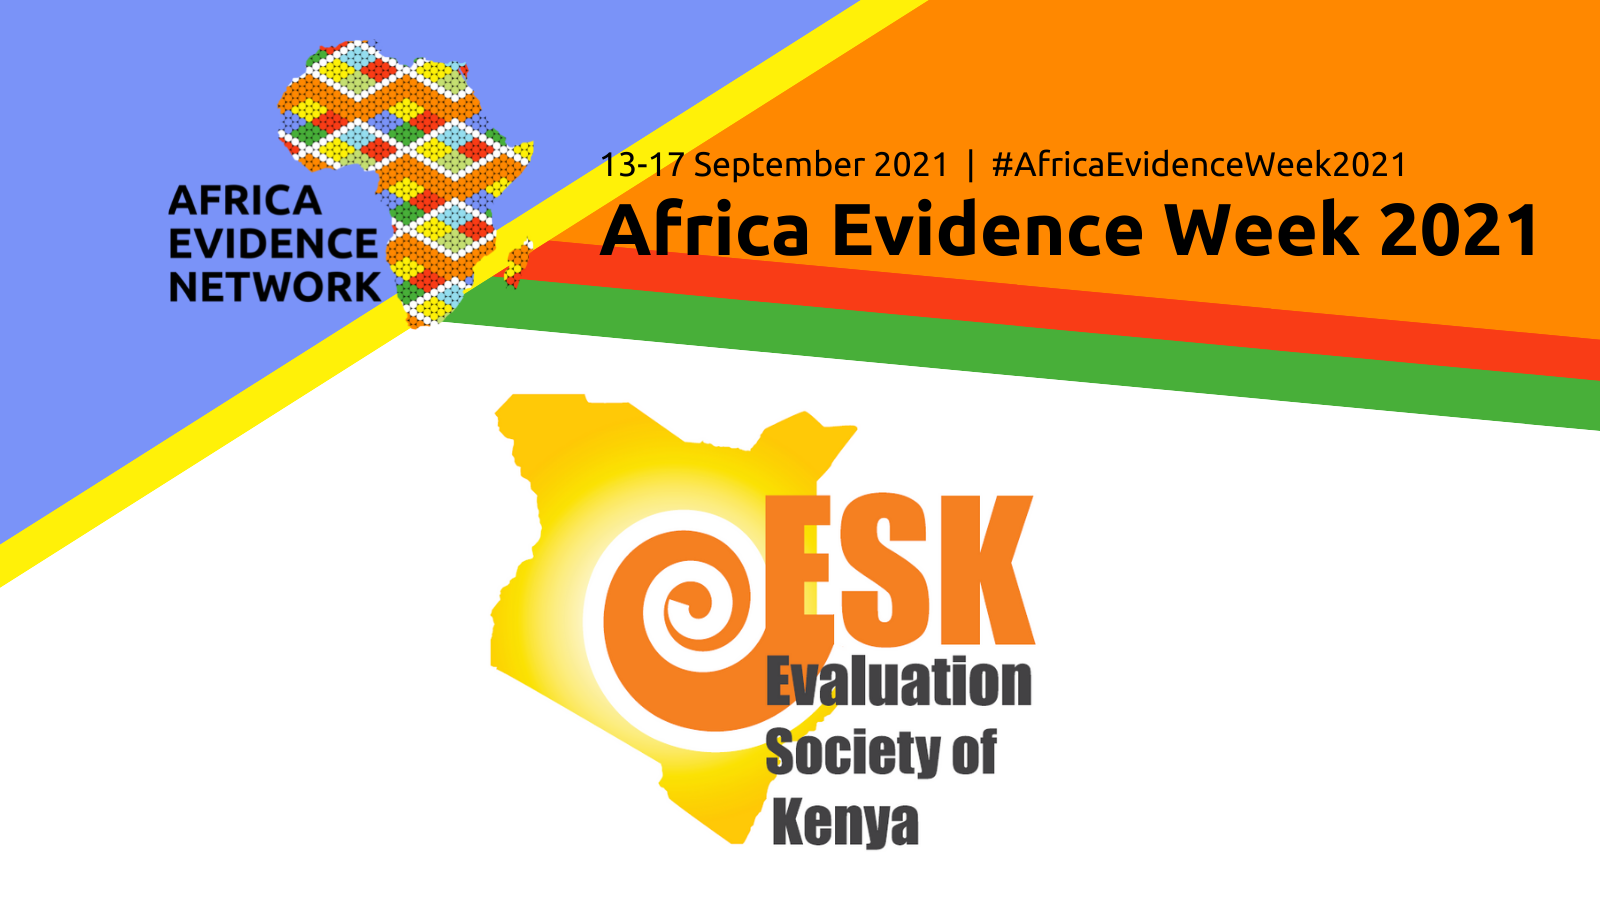 Africa Evidence Week 2021 event: Evolving evaluation culture and practice in Africa: a case for Kenya